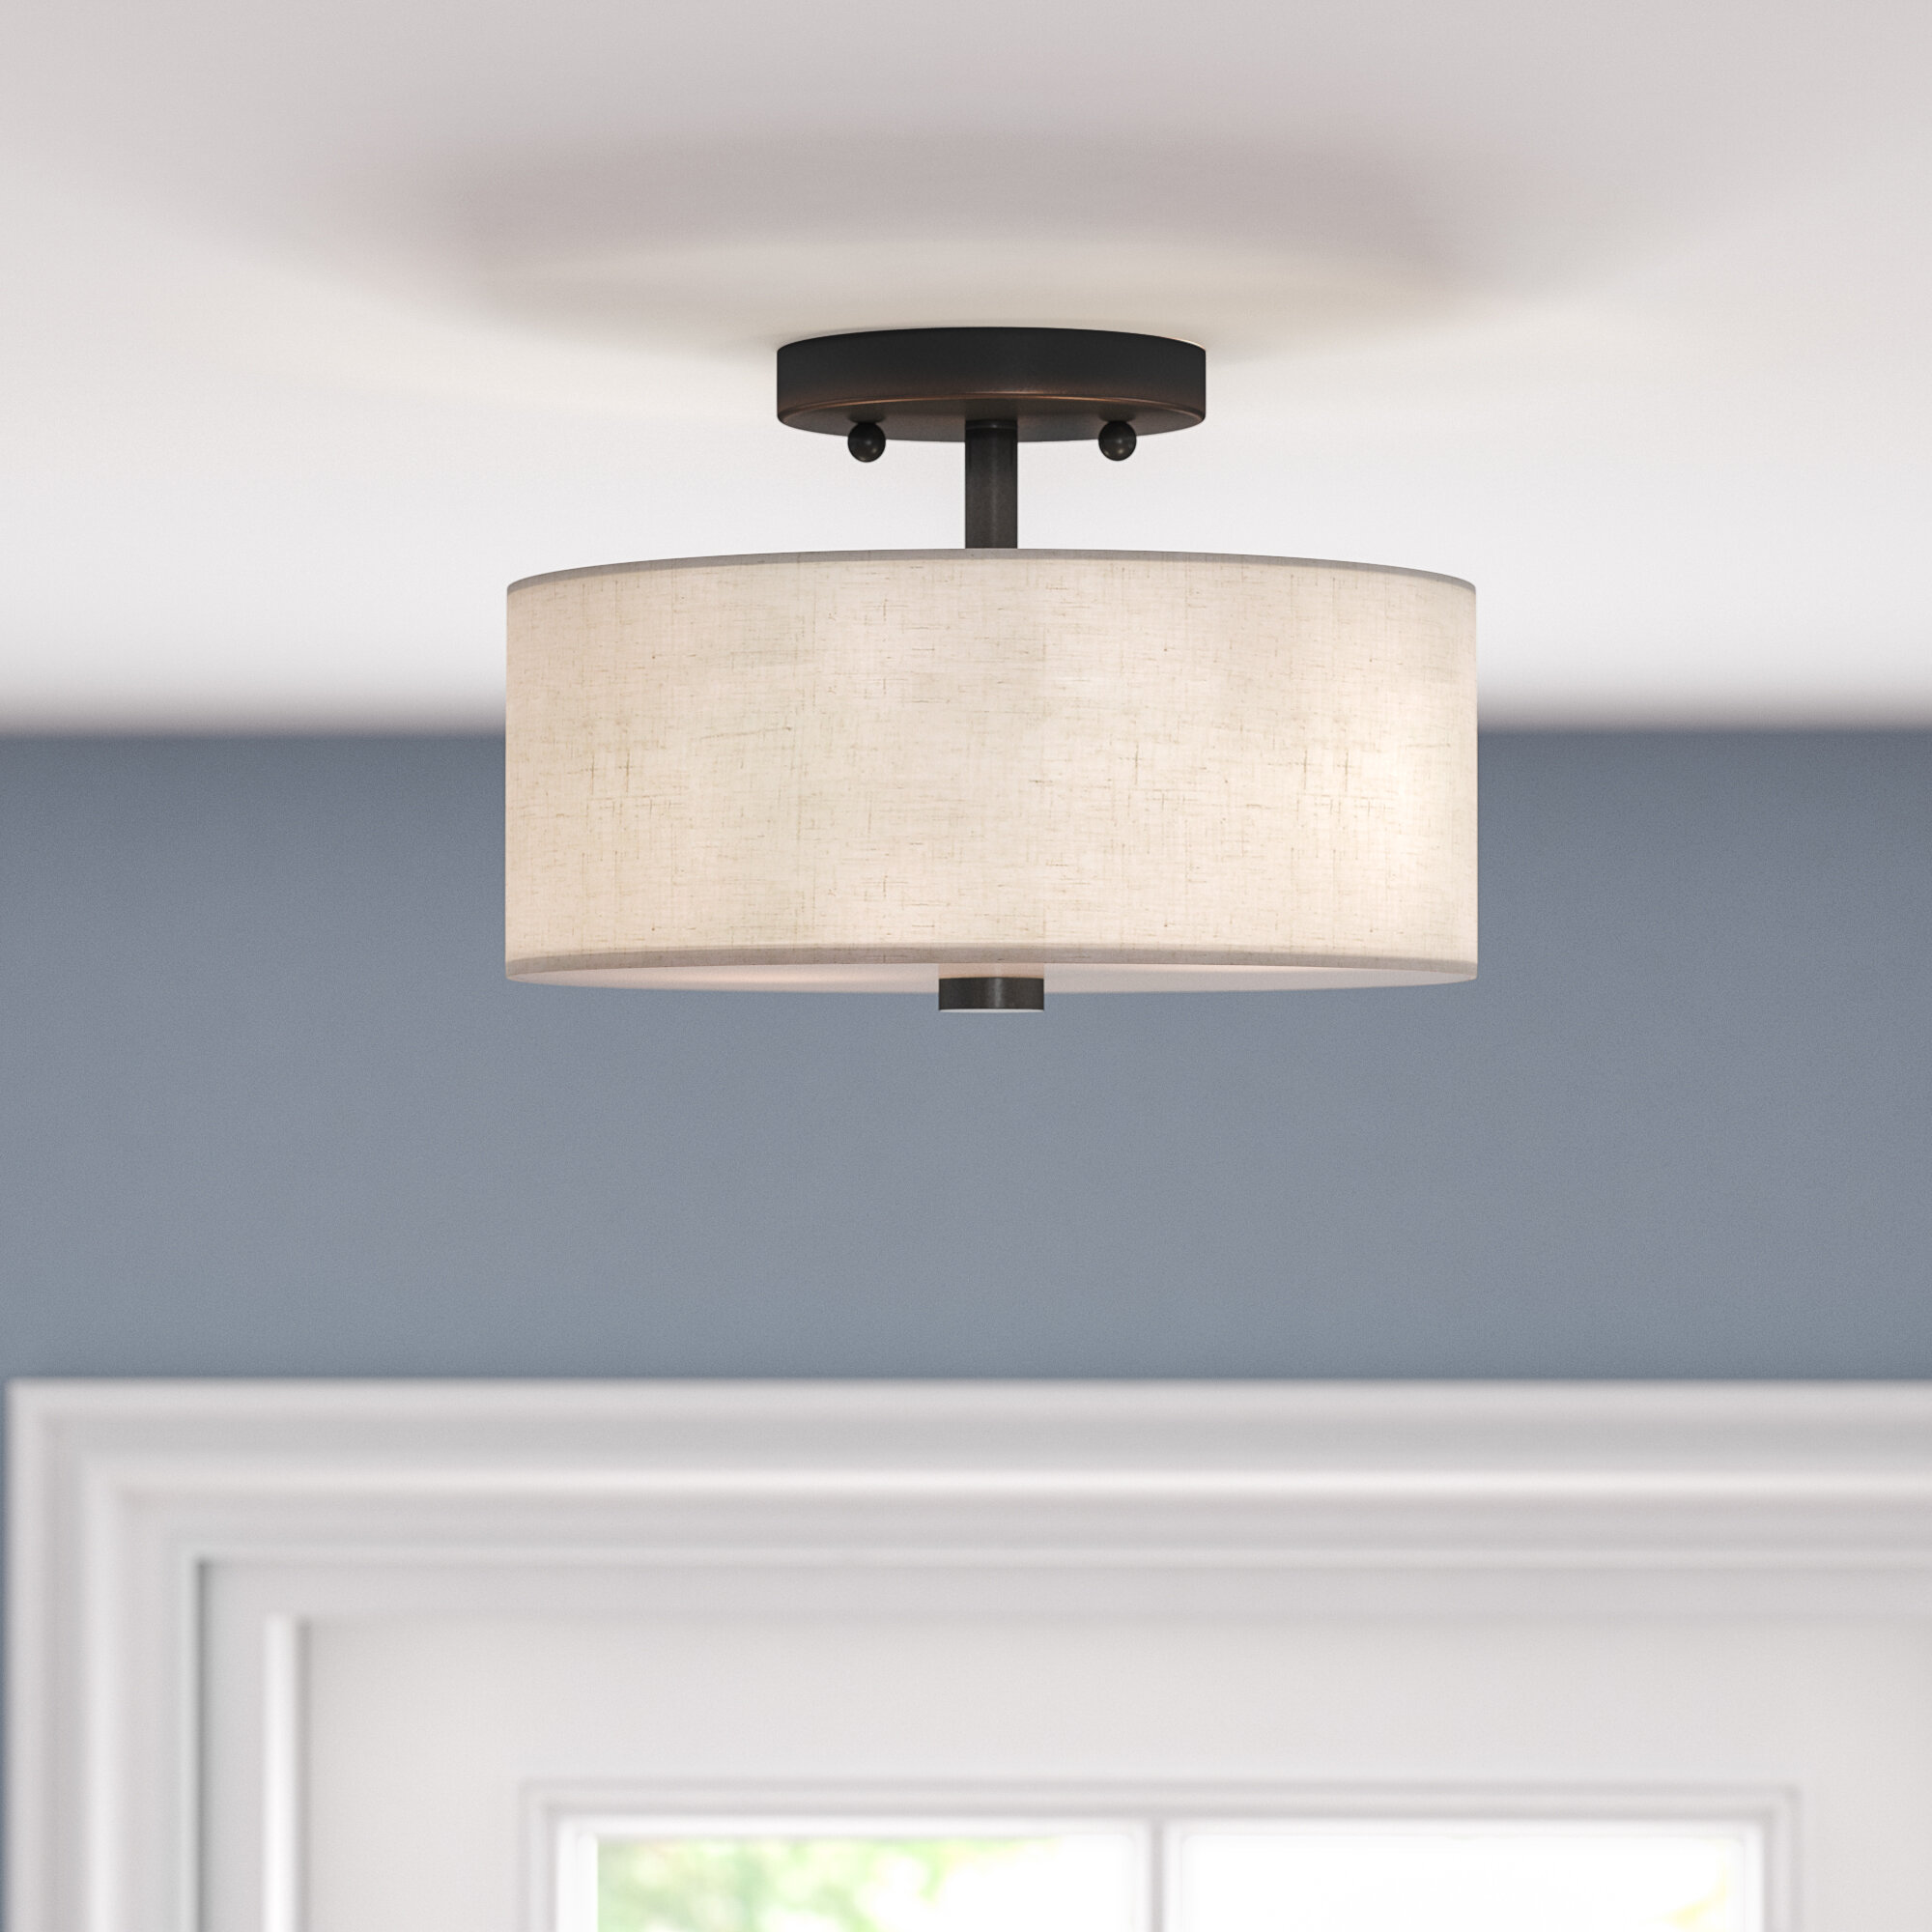 Ivy Bronx Alina 2-Light Semi Flush Mount & Reviews | Wayfair